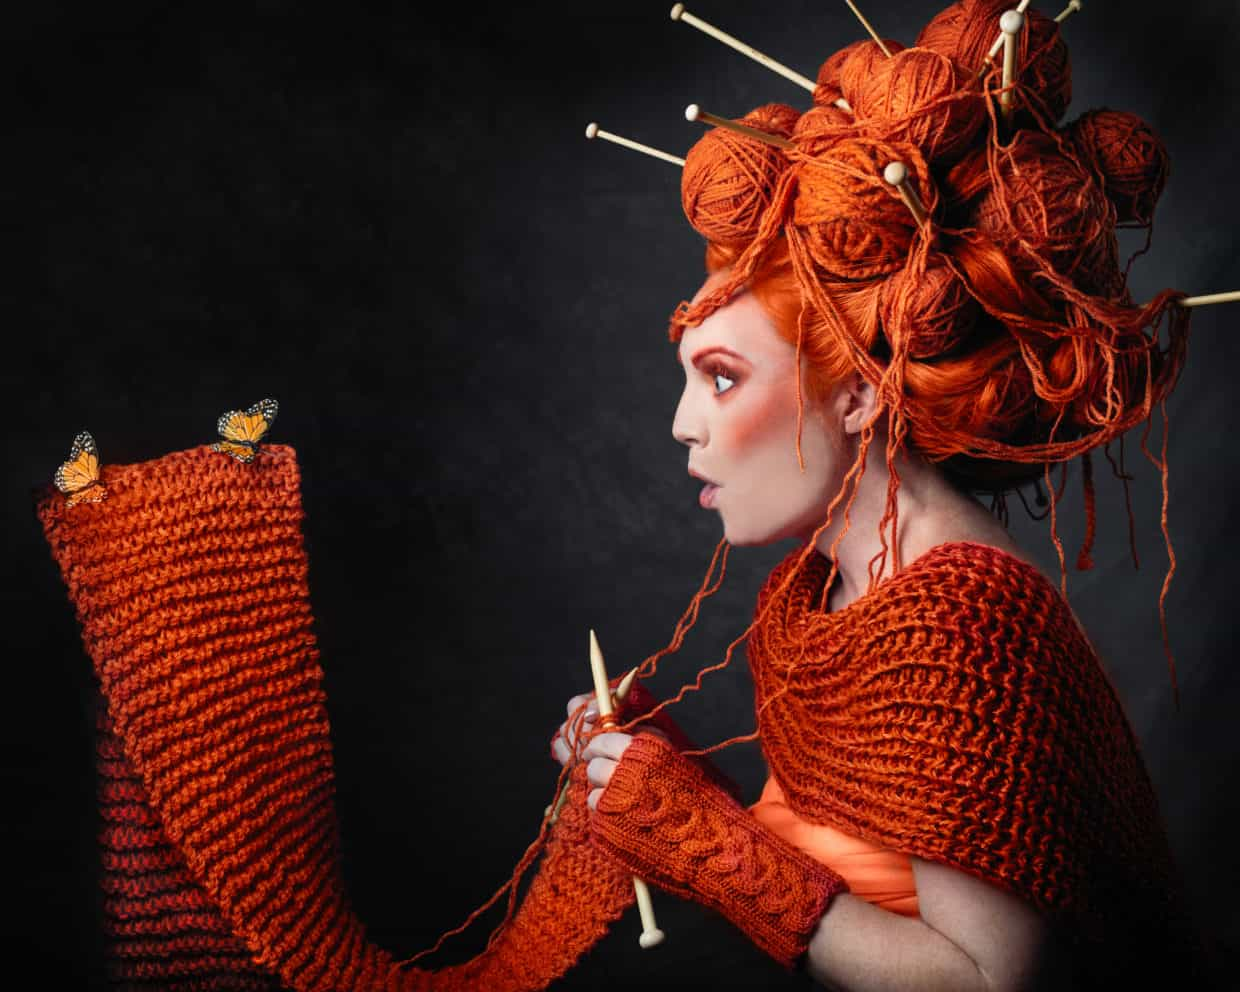 Stonetree Creative - Woman with yarn for hair knitting a scarf